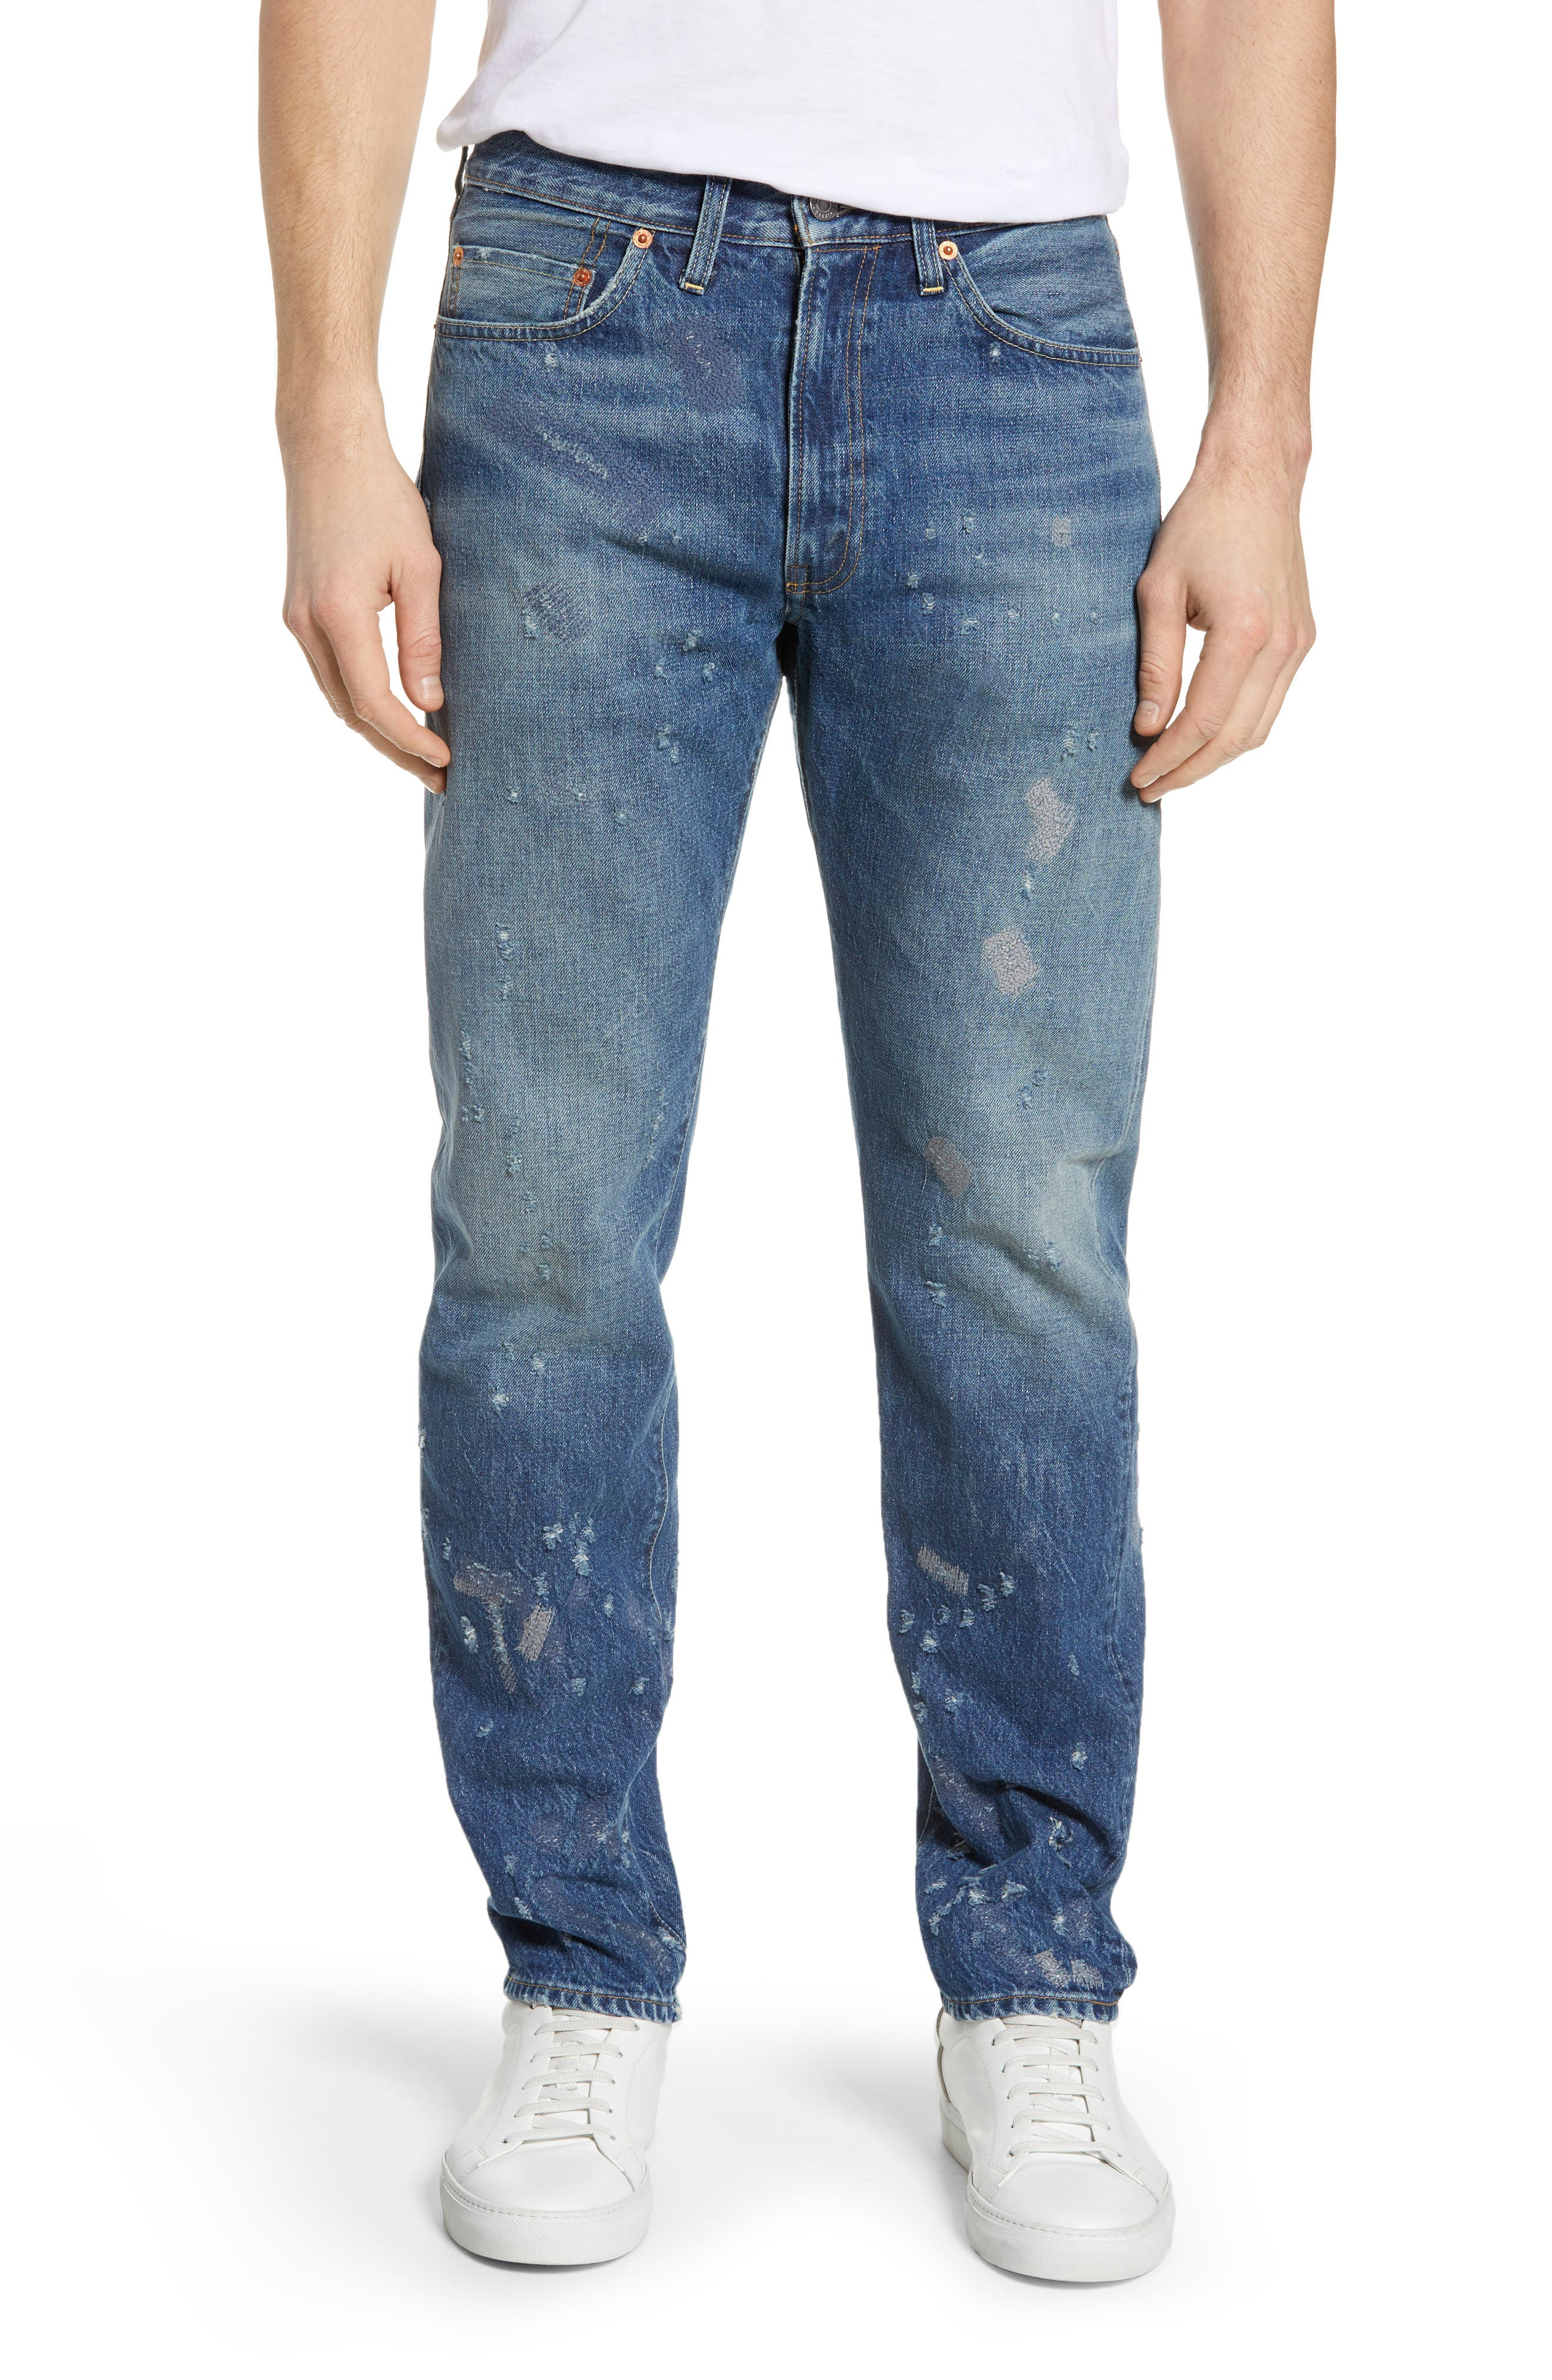 LEVI'S<SUP>®</SUP> VINTAGE CLOTHING, 1954 501<sup>®</sup> Shrink To Fit Straight Leg Jeans, Main thumbnail 1, color, BLACKMON